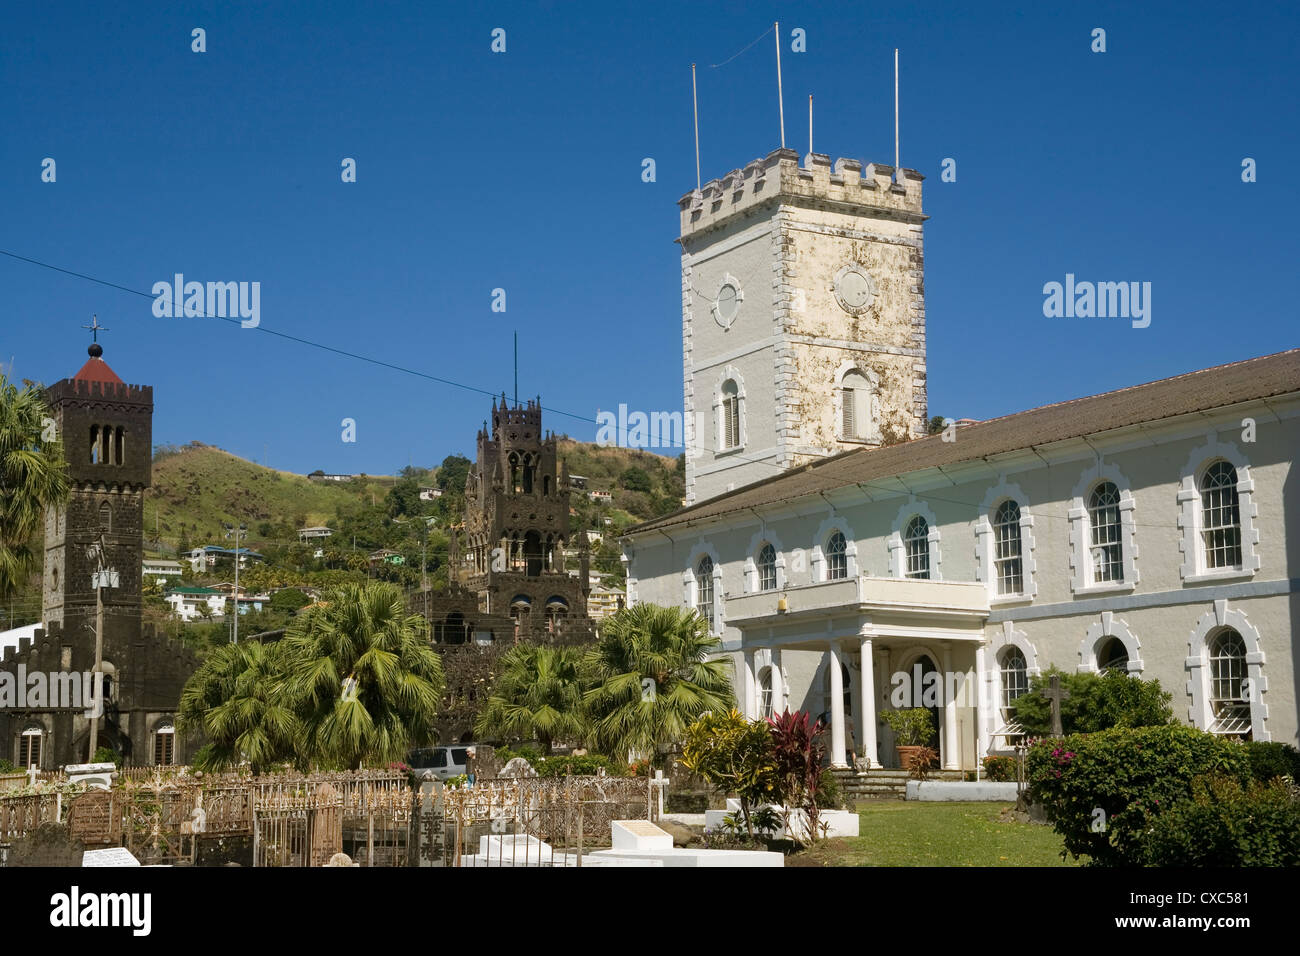 Anglican cathedral, with the Roman Catholic cathedral on the left, Kingstown, St. Vincent, St. Vincent and the Grenadines - Stock Image